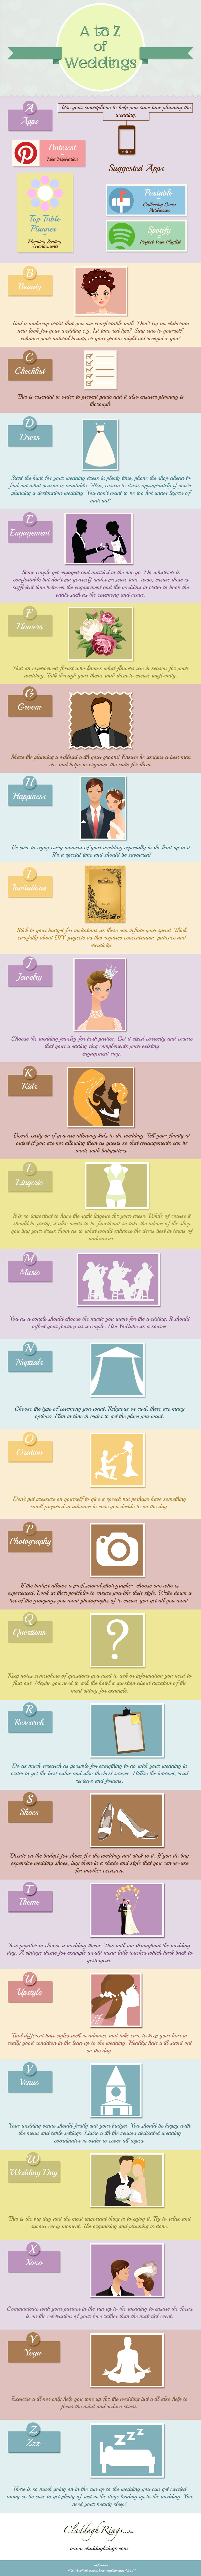 A handy guide to get you organized for your wedding day.